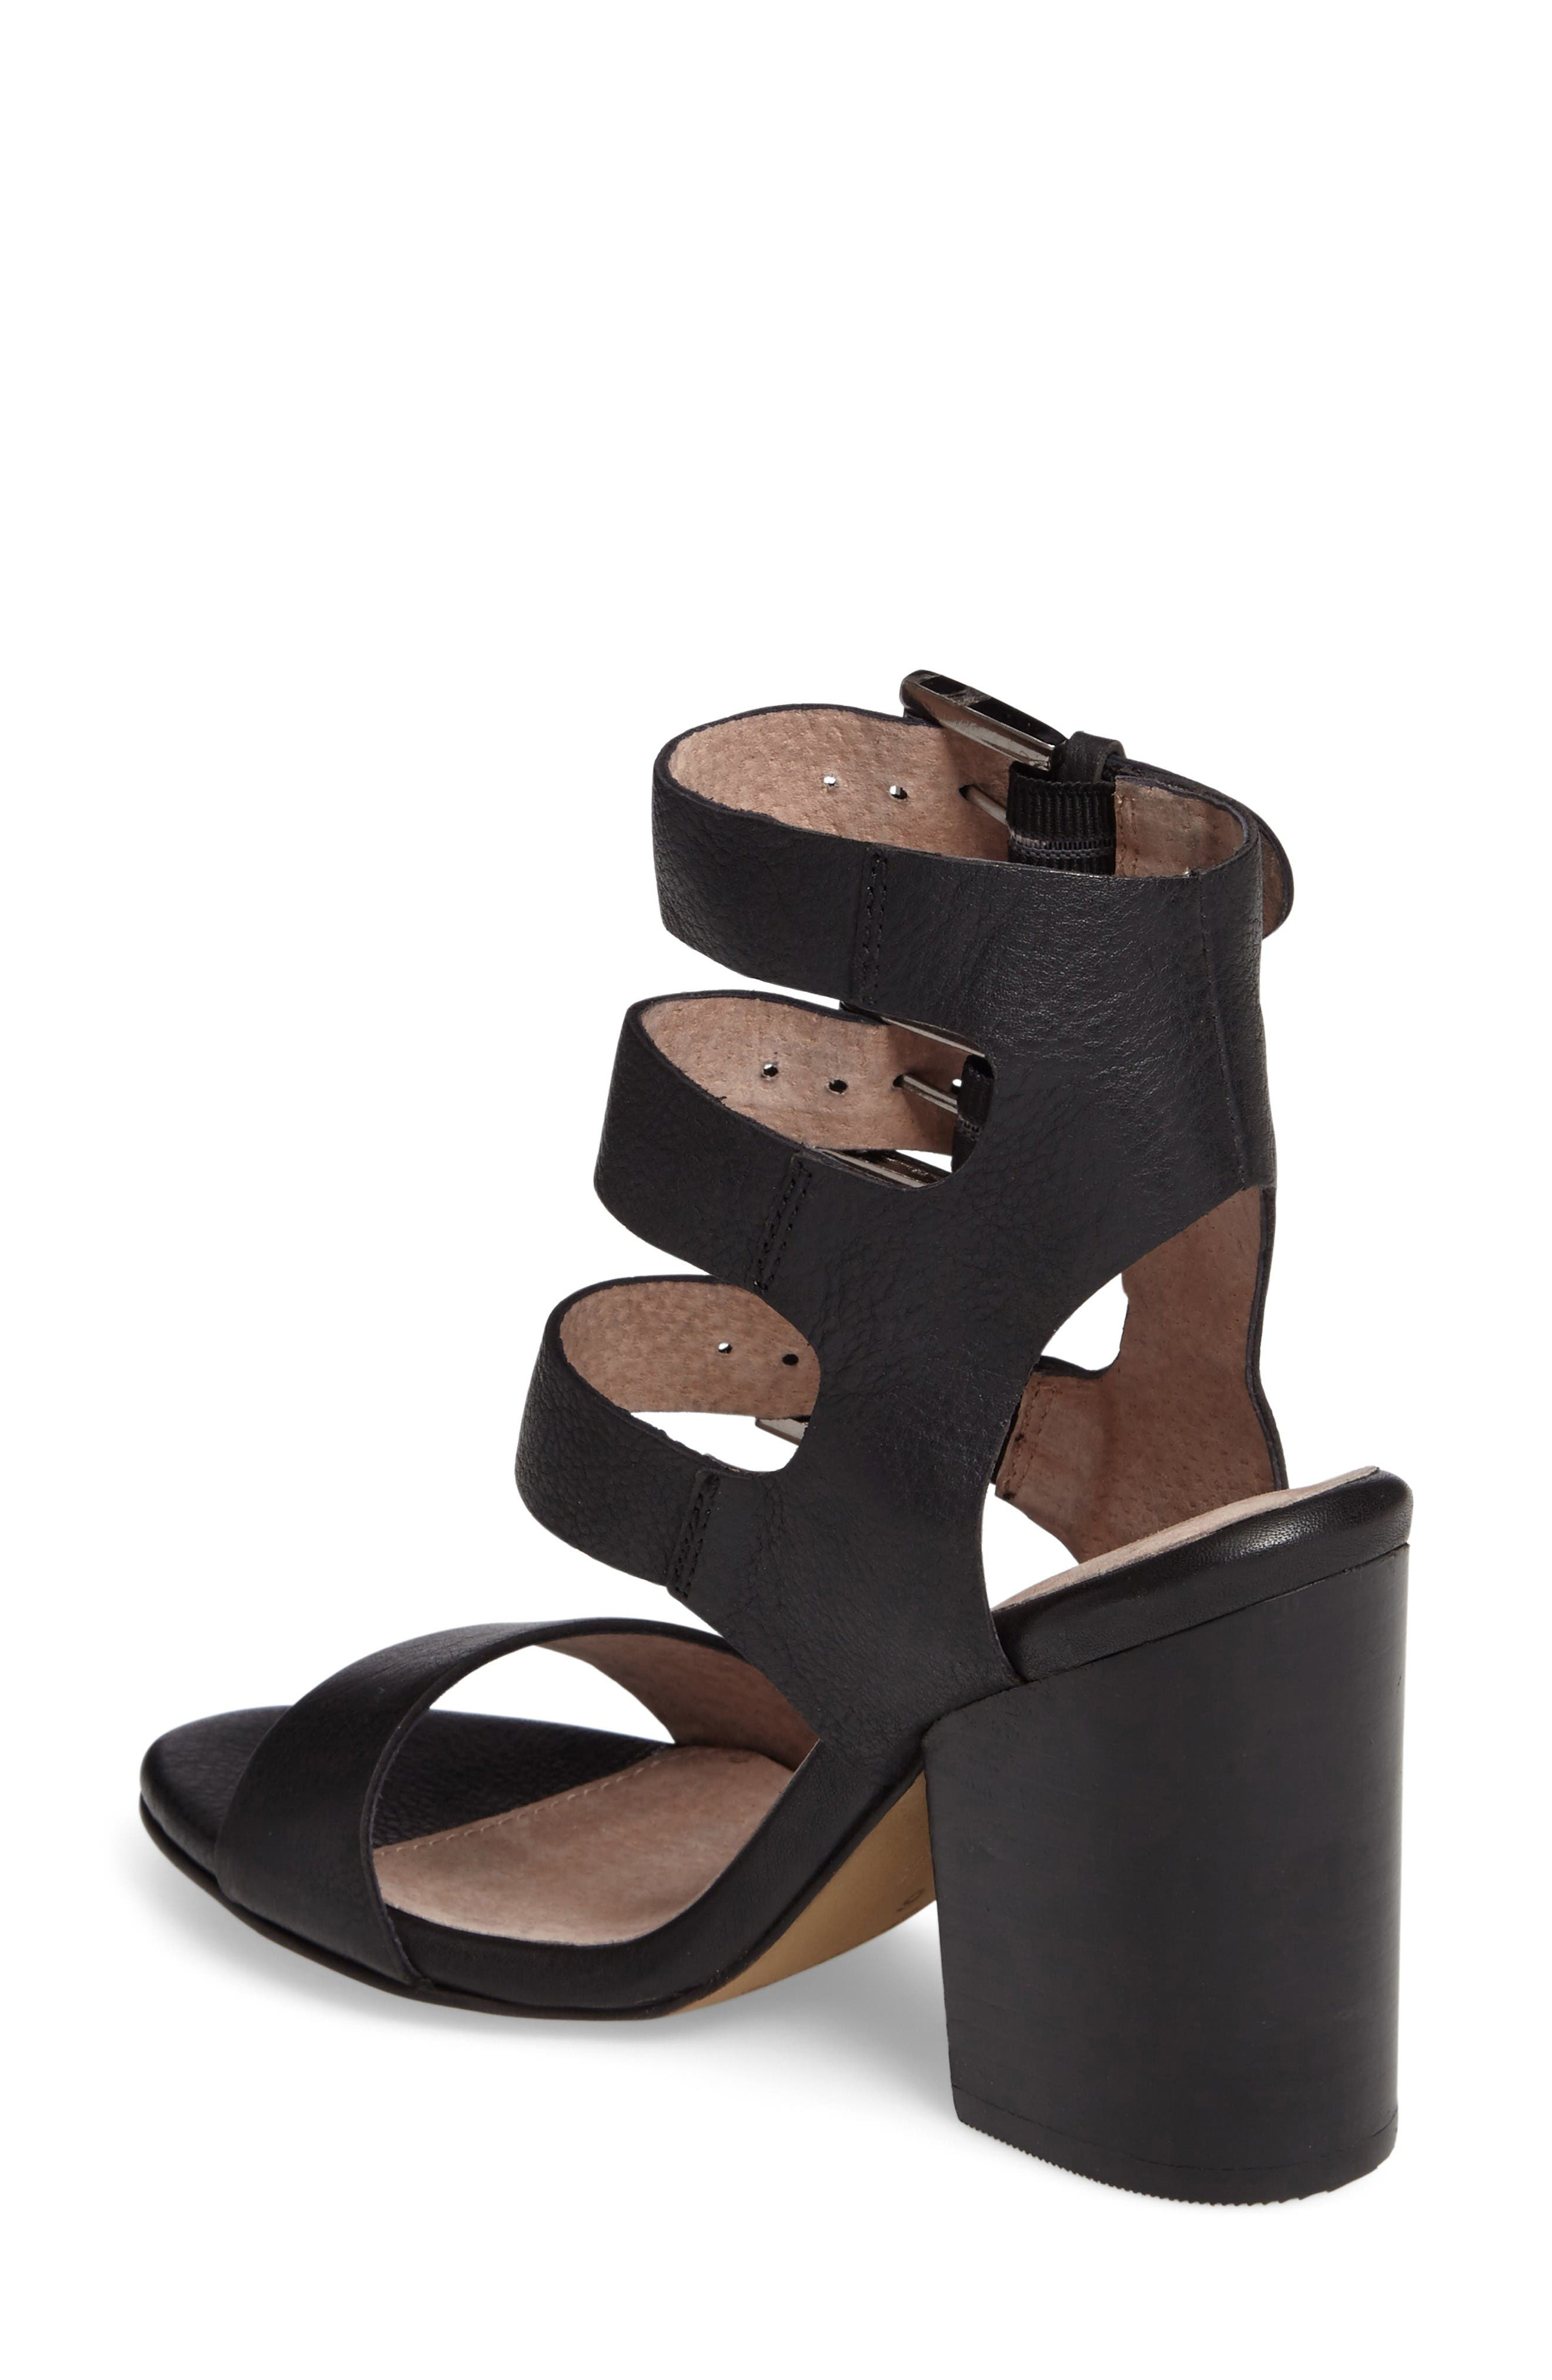 Dilly Dally Sandal,                             Alternate thumbnail 2, color,                             Black Leather